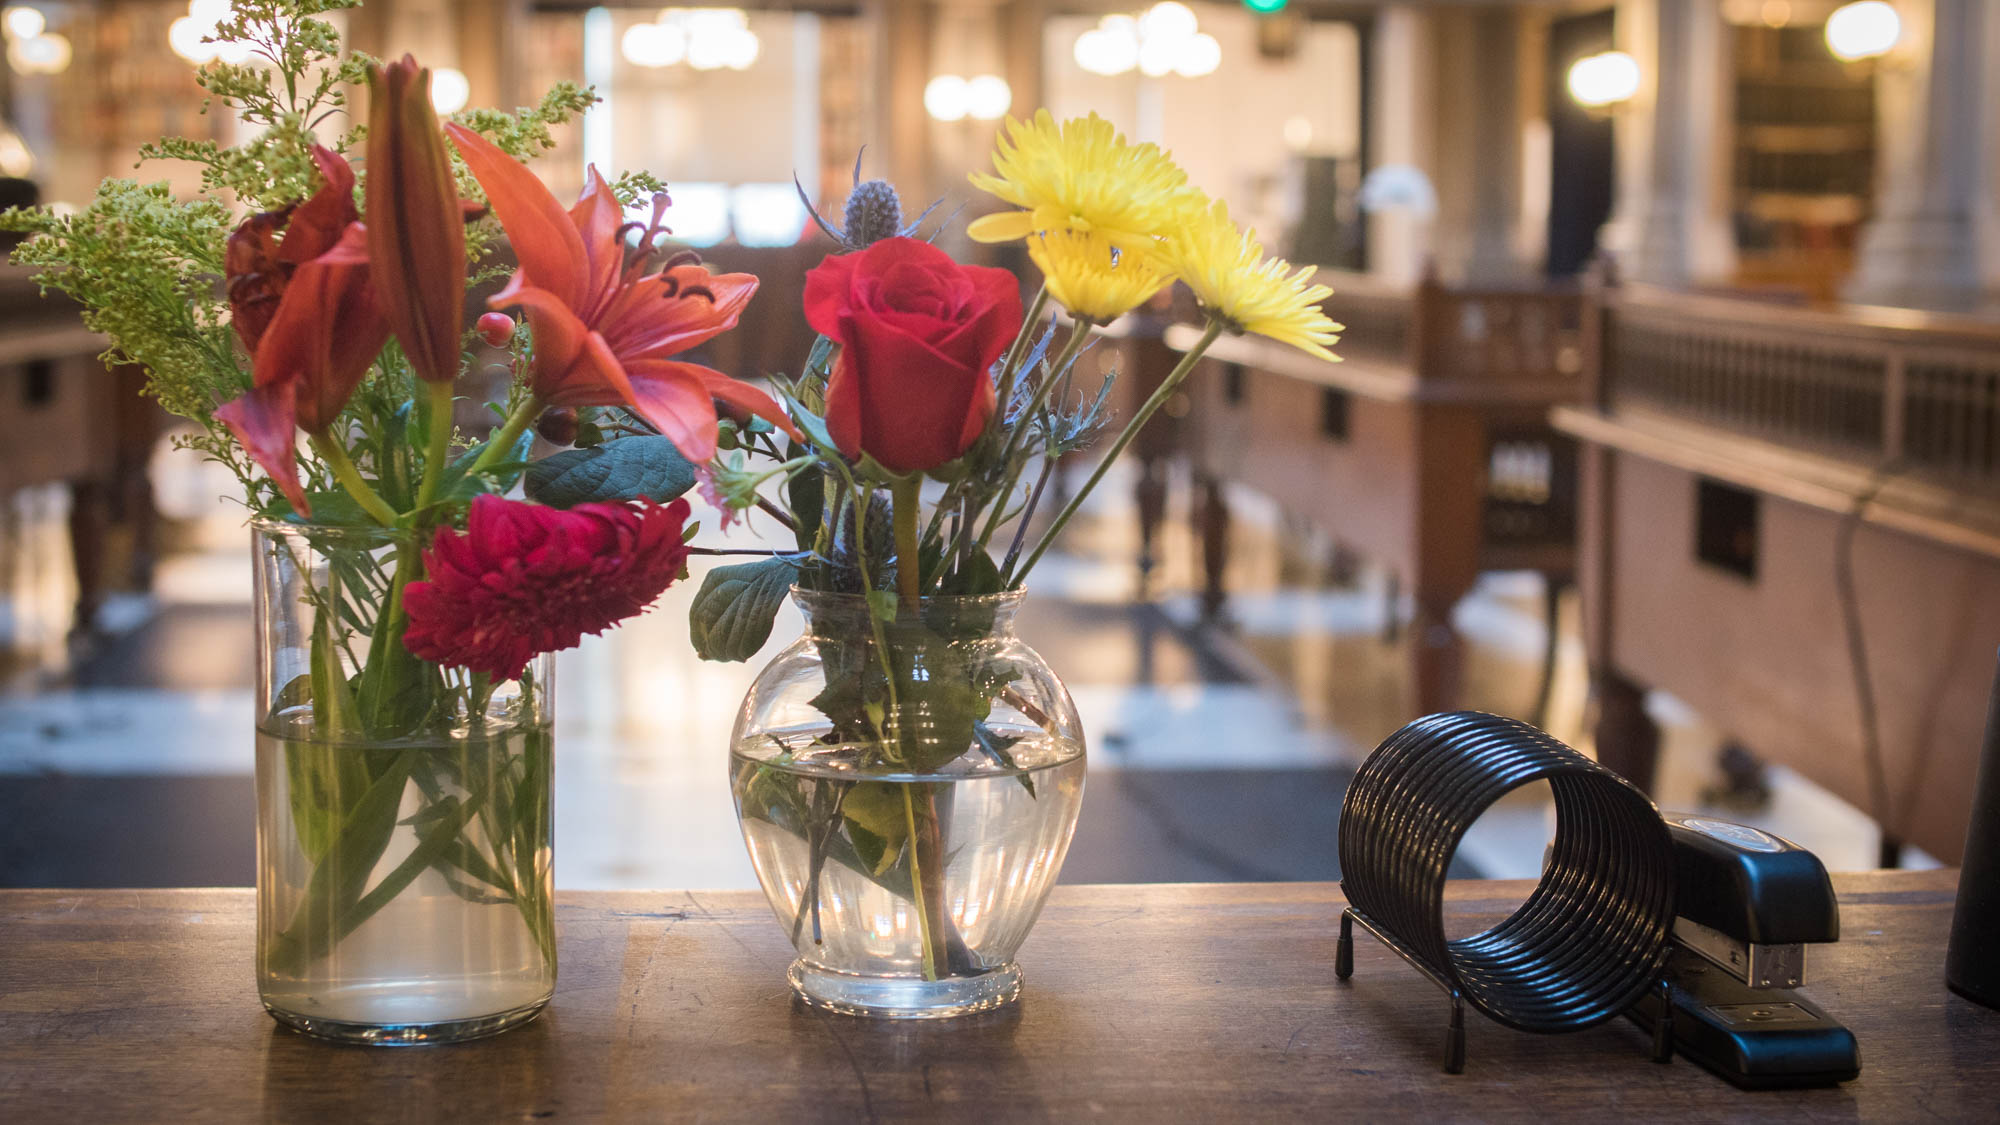 On some of the desks in the George Peabody Library, there are vases of fresh flowers.